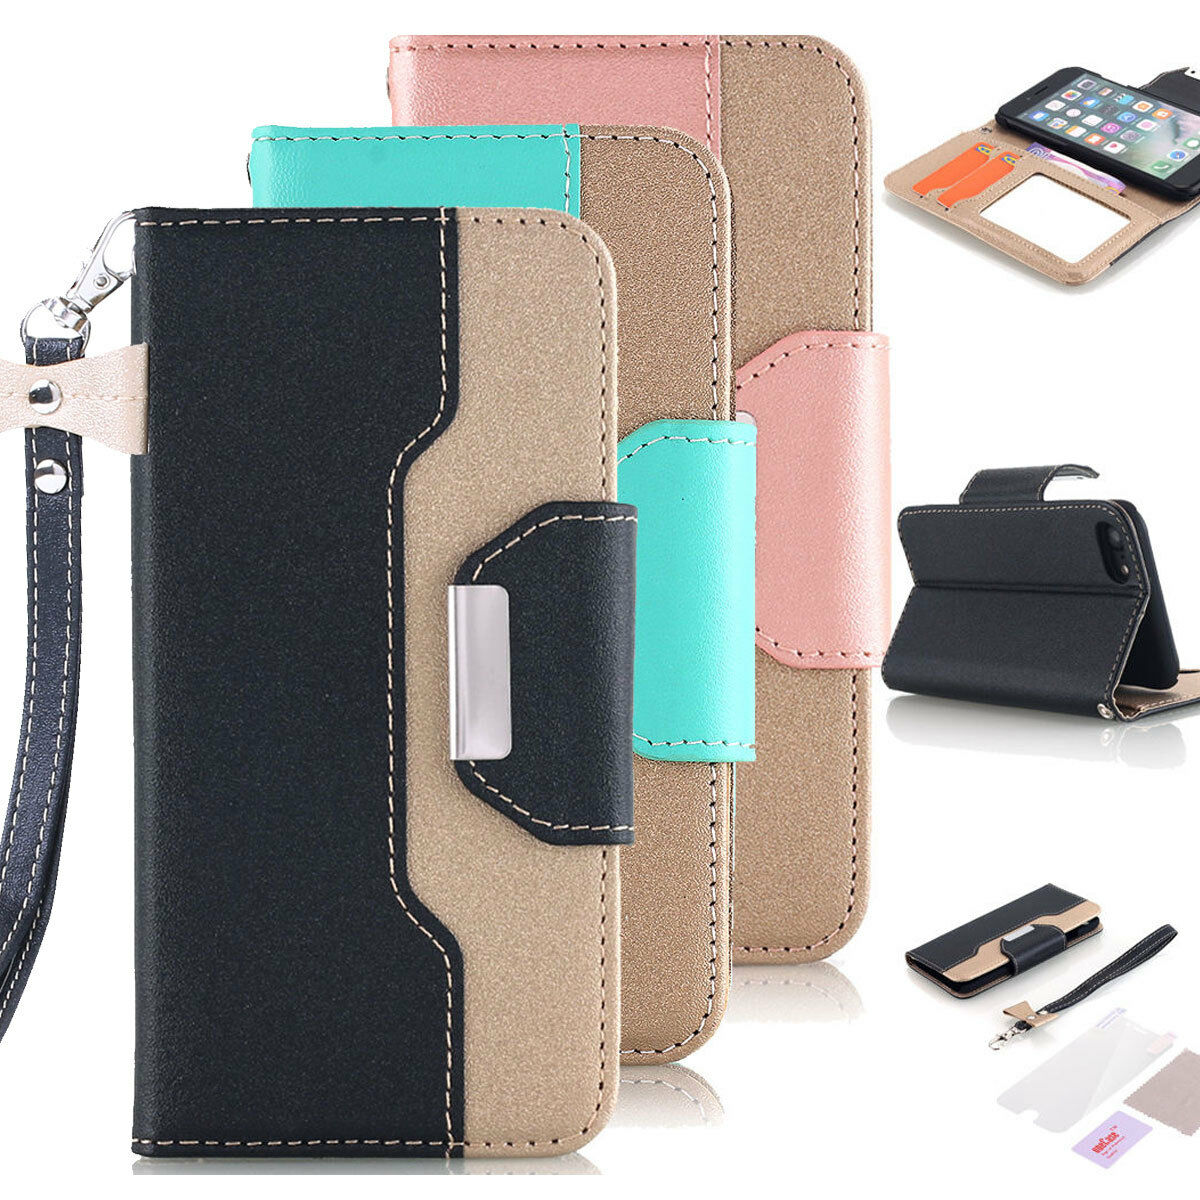 luxury-leather-flip-wallet-stand-phone-case-cover-for-iphone-x-7-8-plus-6s-plus